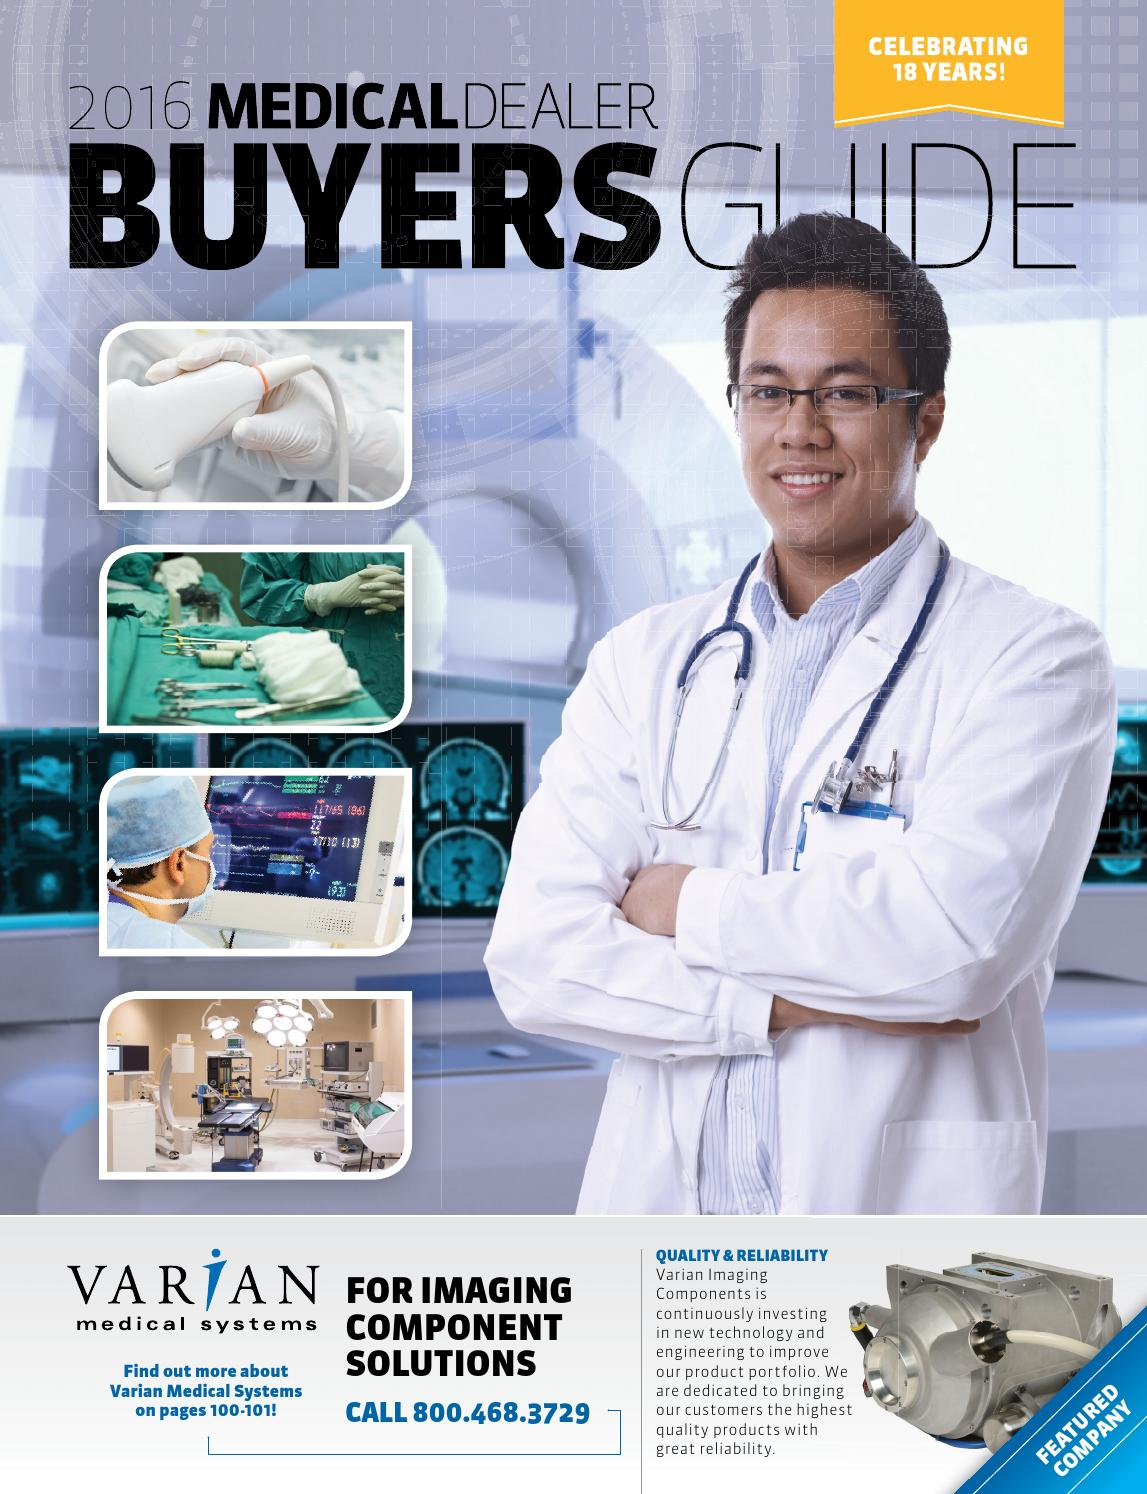 2016 Medical Dealer Buyers Guide by MD Publishing - issuu